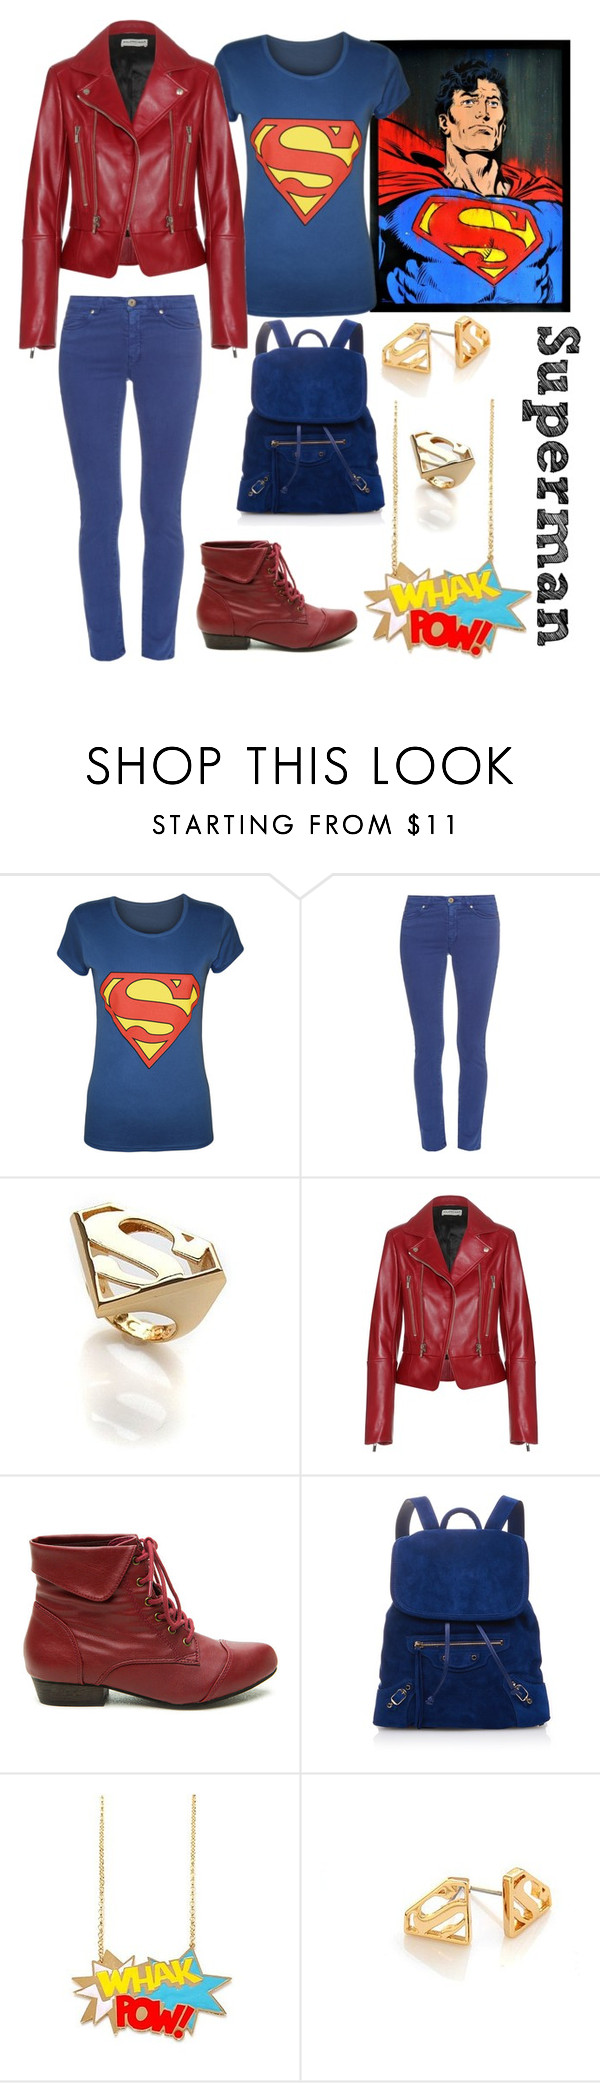 """""""Superman"""" by jhmb on Polyvore featuring WearAll, Weekend Max Mara, Noir and Balenciaga"""